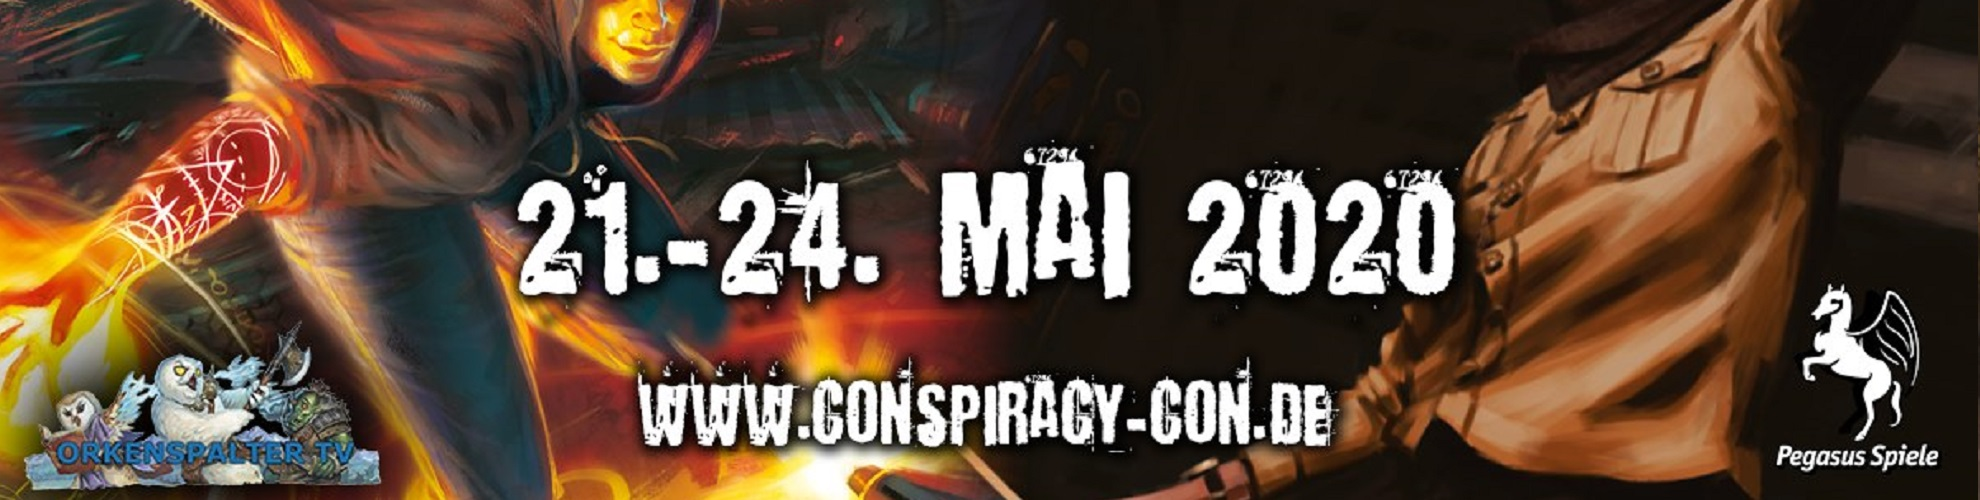 Online-Convention: CONspiracy 2